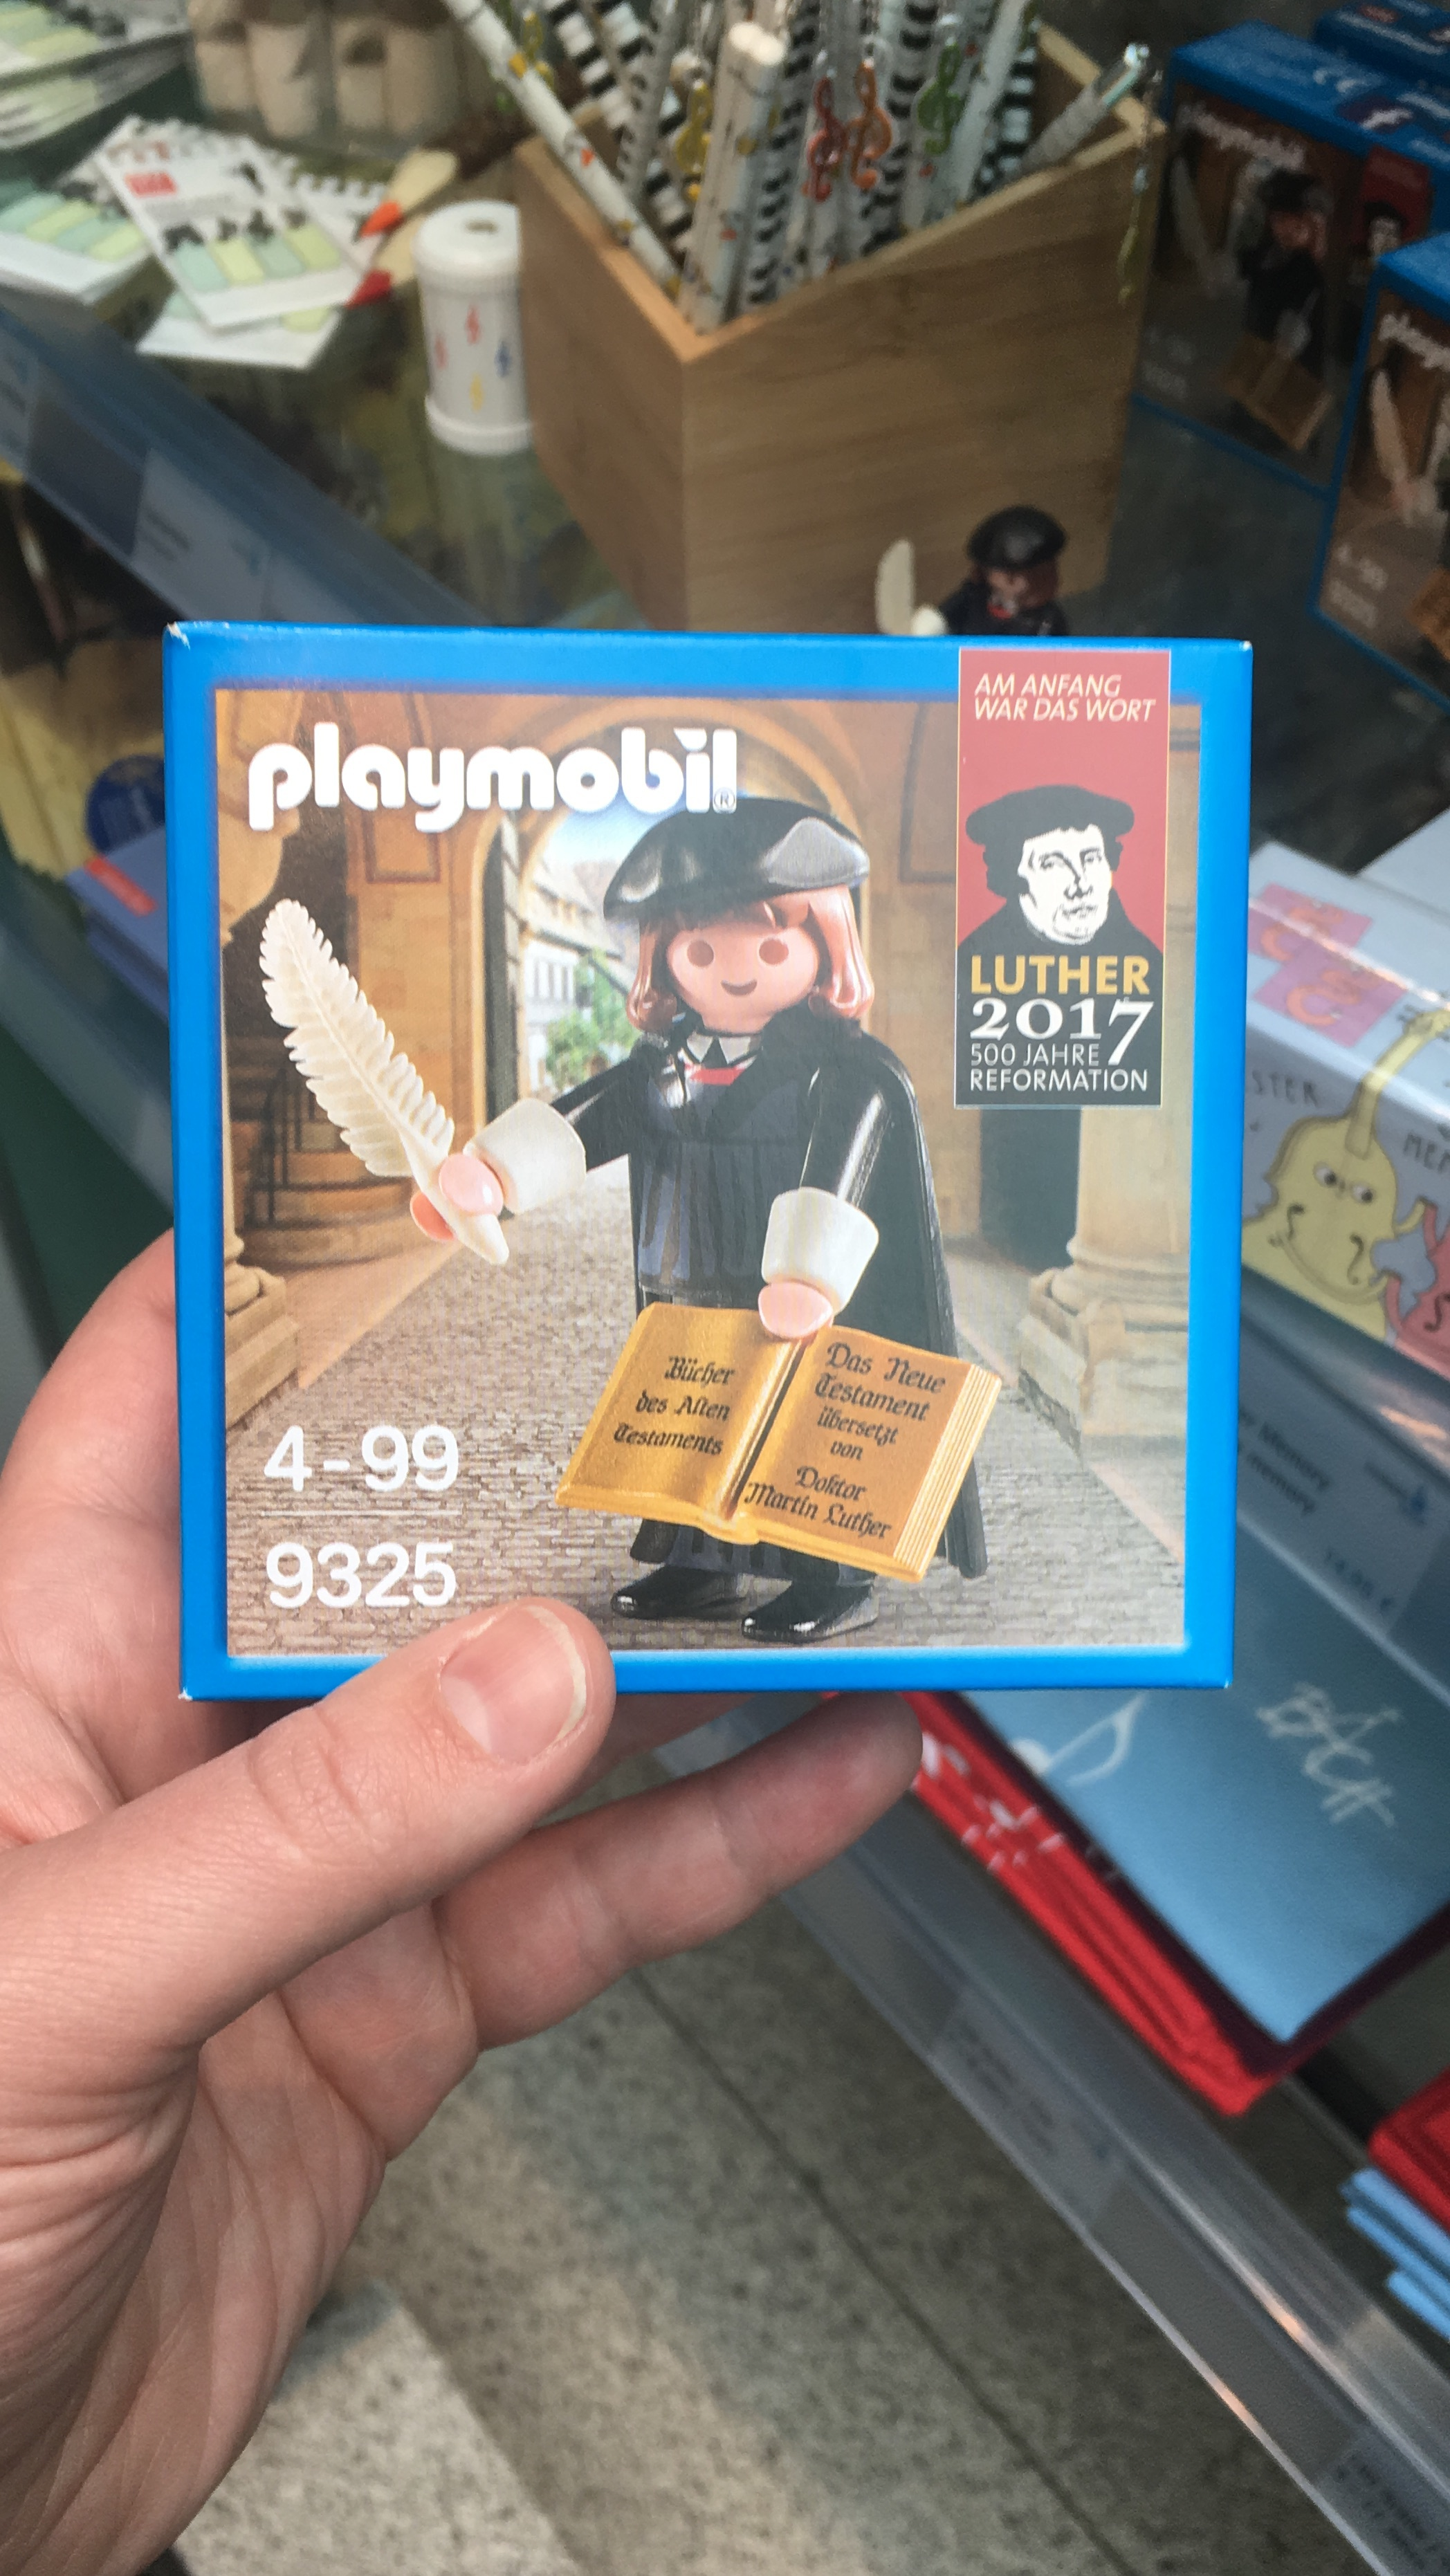 A playmobil Martin Luther…. My favorite purchase of the trip (lol)